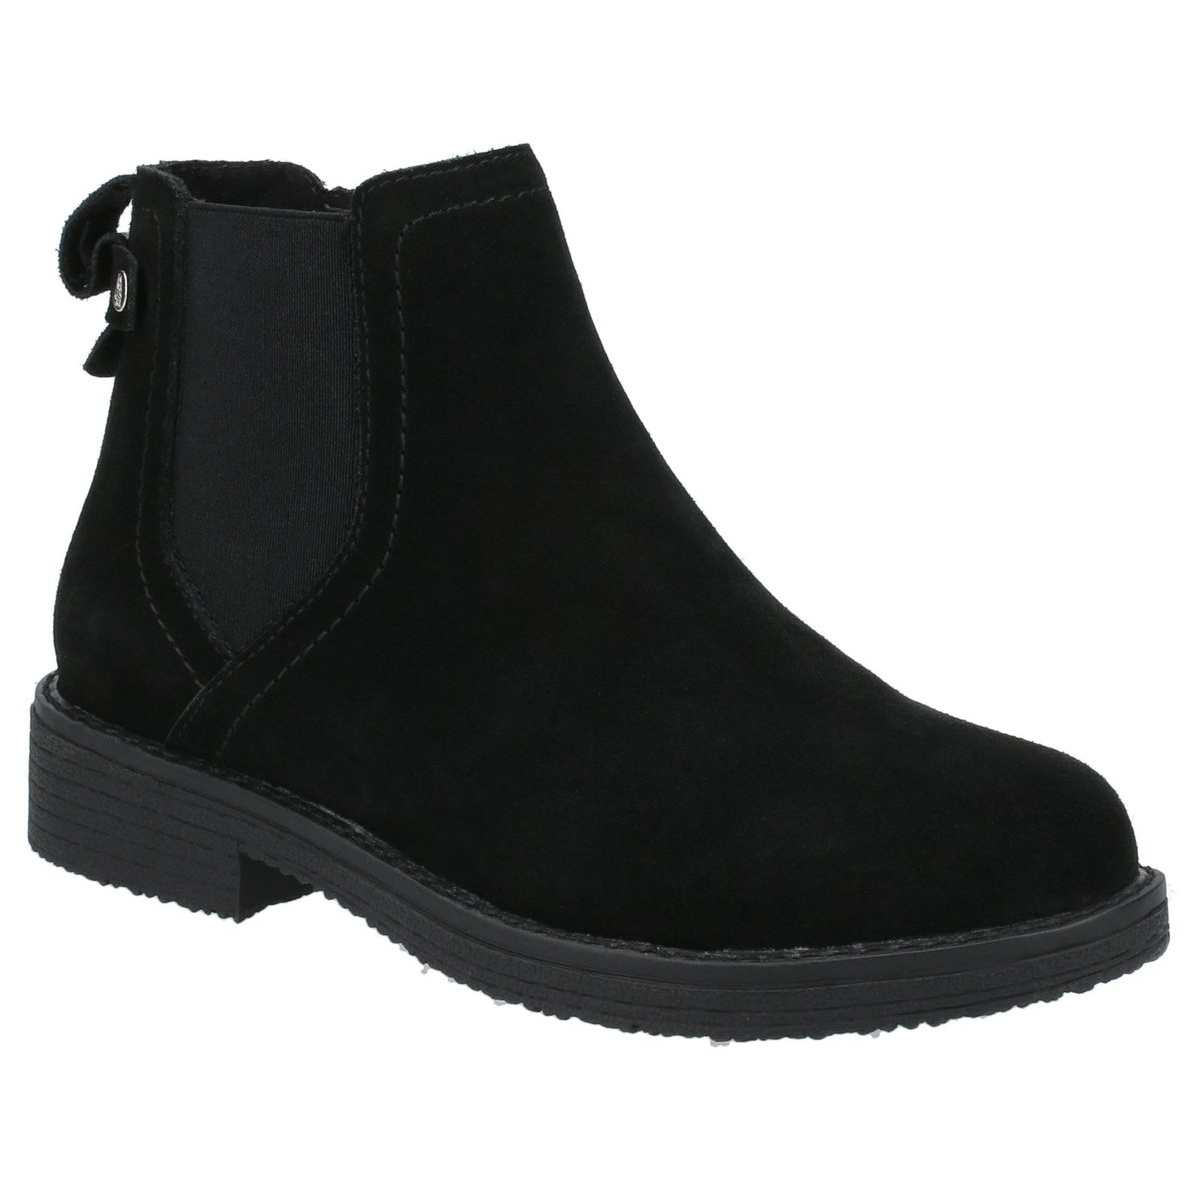 Hush Puppies Womens/Ladies Maddy Suede Ankle Boots (7 UK) (Black)